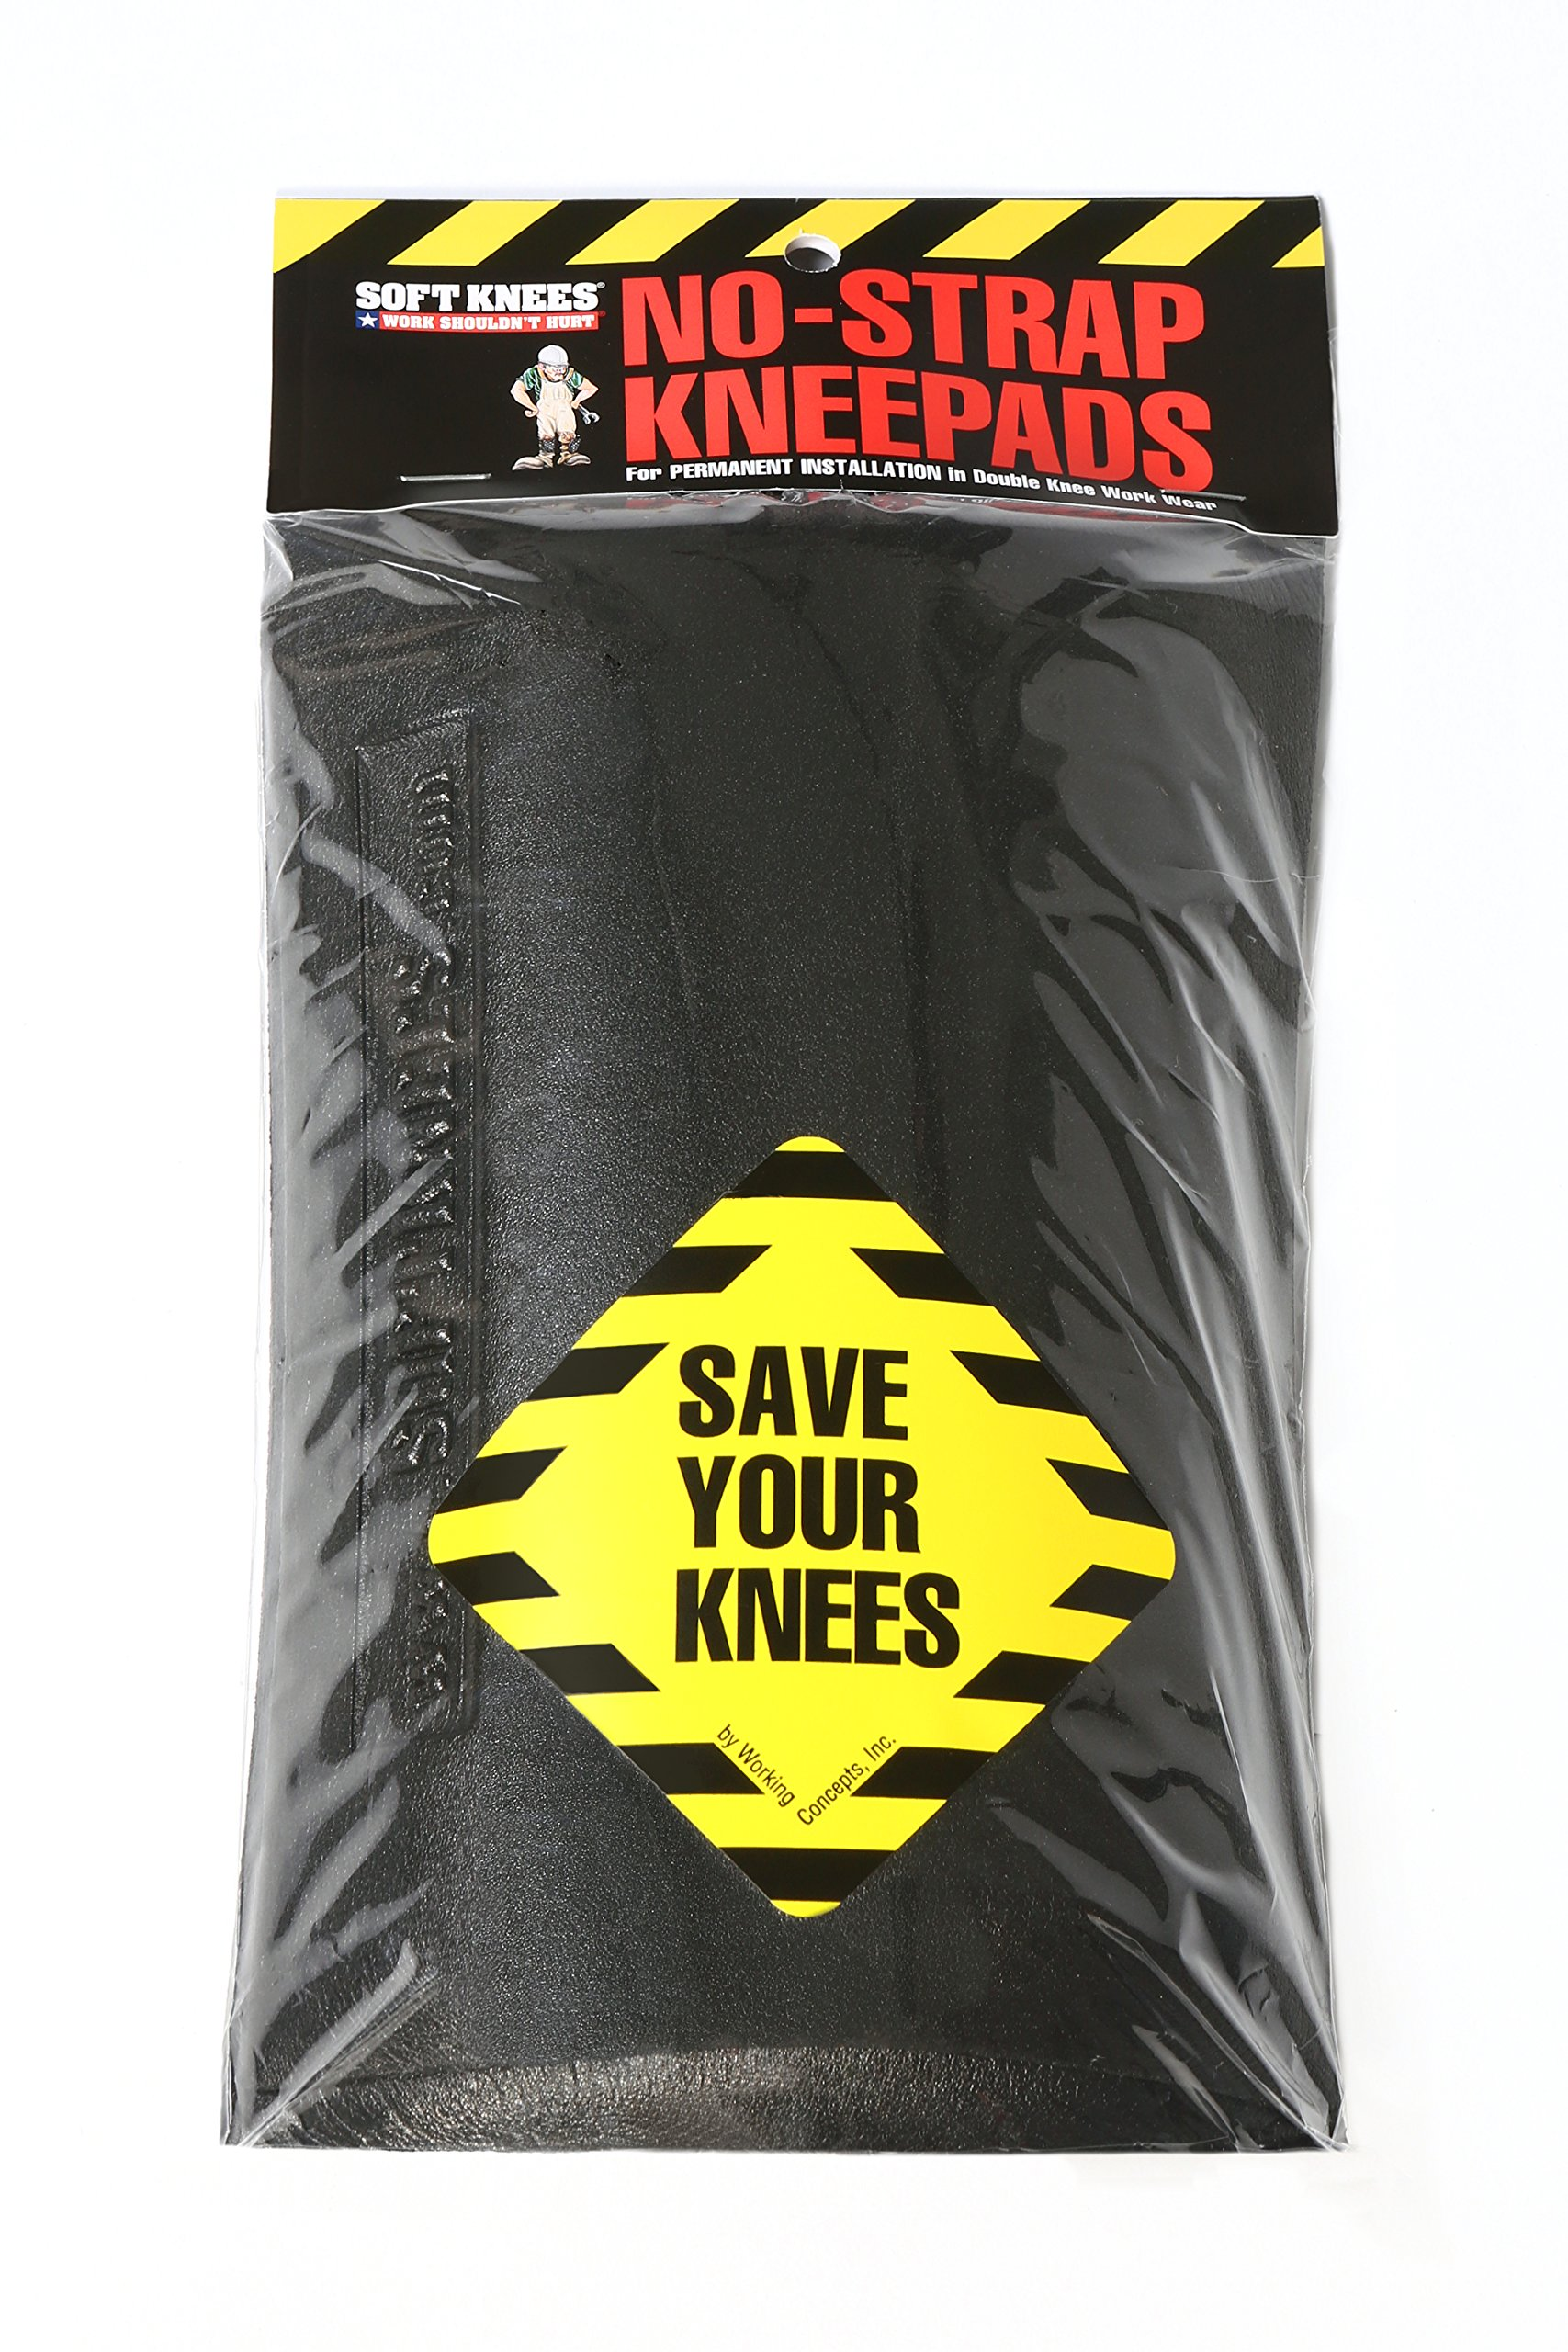 1010 Soft Knees No Strap Knee Pads - Inserts 6'' x 9''